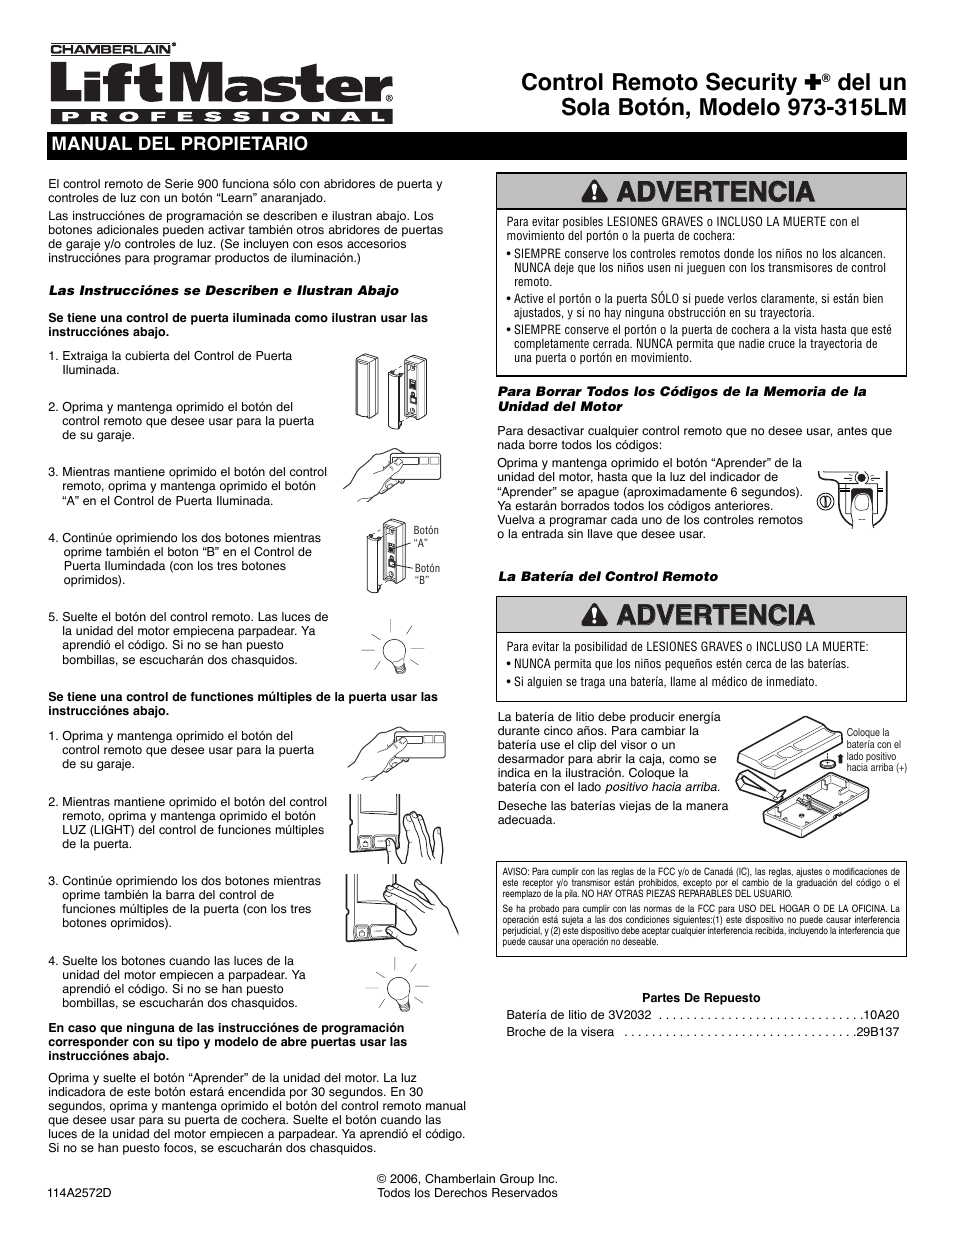 Spanish, Control remoto security, Manual del propietario